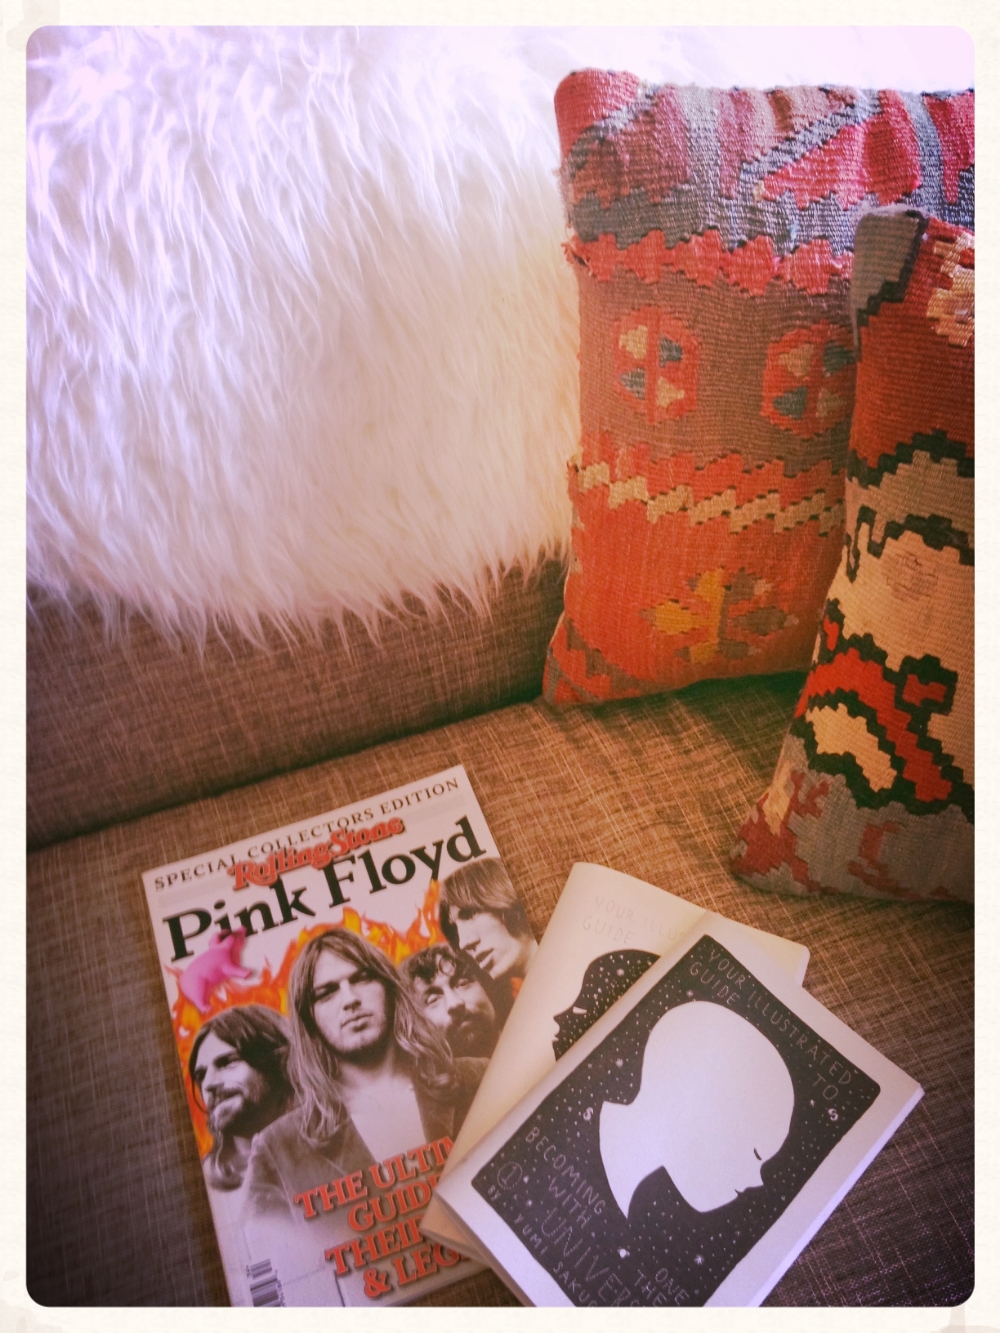 This was an accidental altar. Some reading material on Cara's couch, next to her fur throw, and her kilim pillows just kind of make her feel like a 1970s goddess. Heyyyyyyy, David Gilmore, I love you! xoxo, Cara